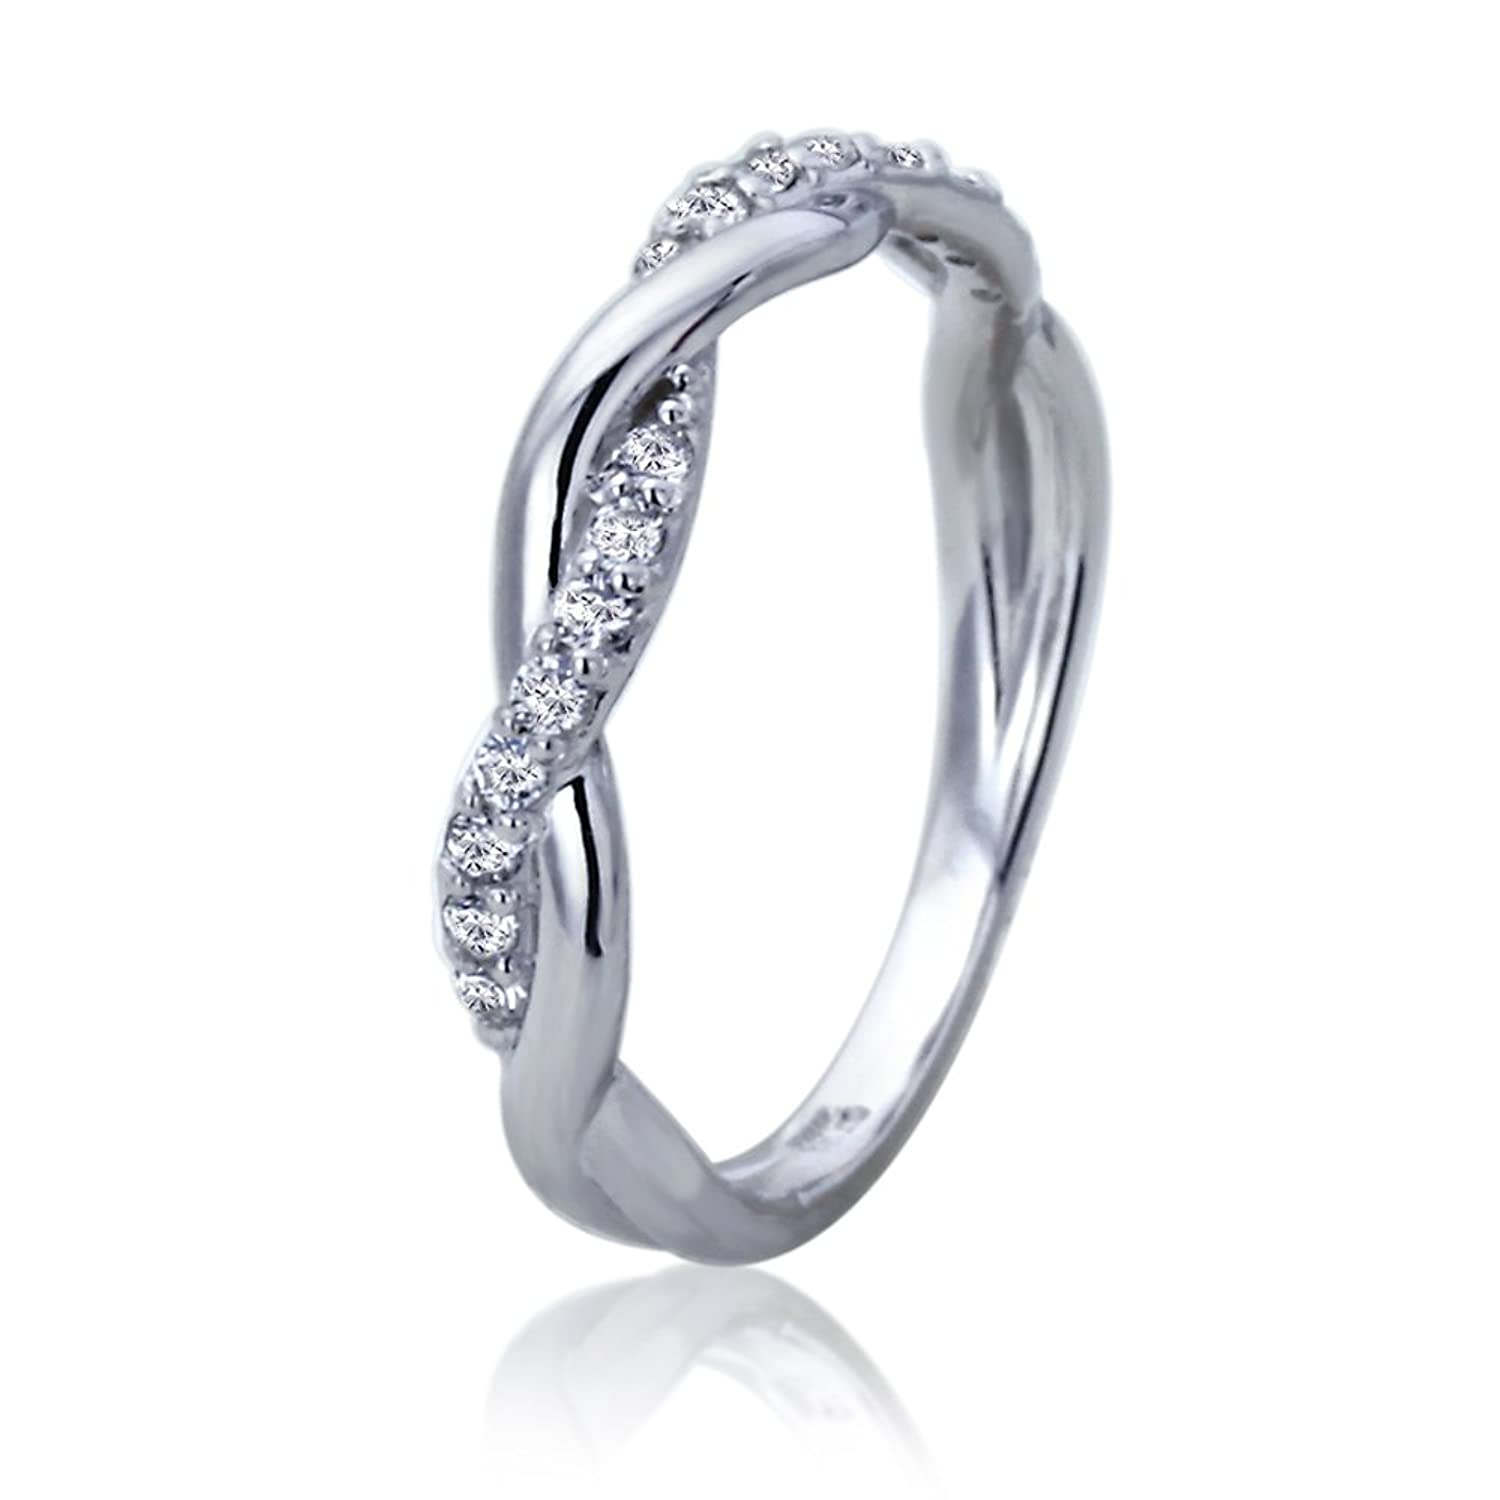 infinity ideas fit matvuk of my twist beautiful ring odd elegant com rings for wedding engagement to band shaped